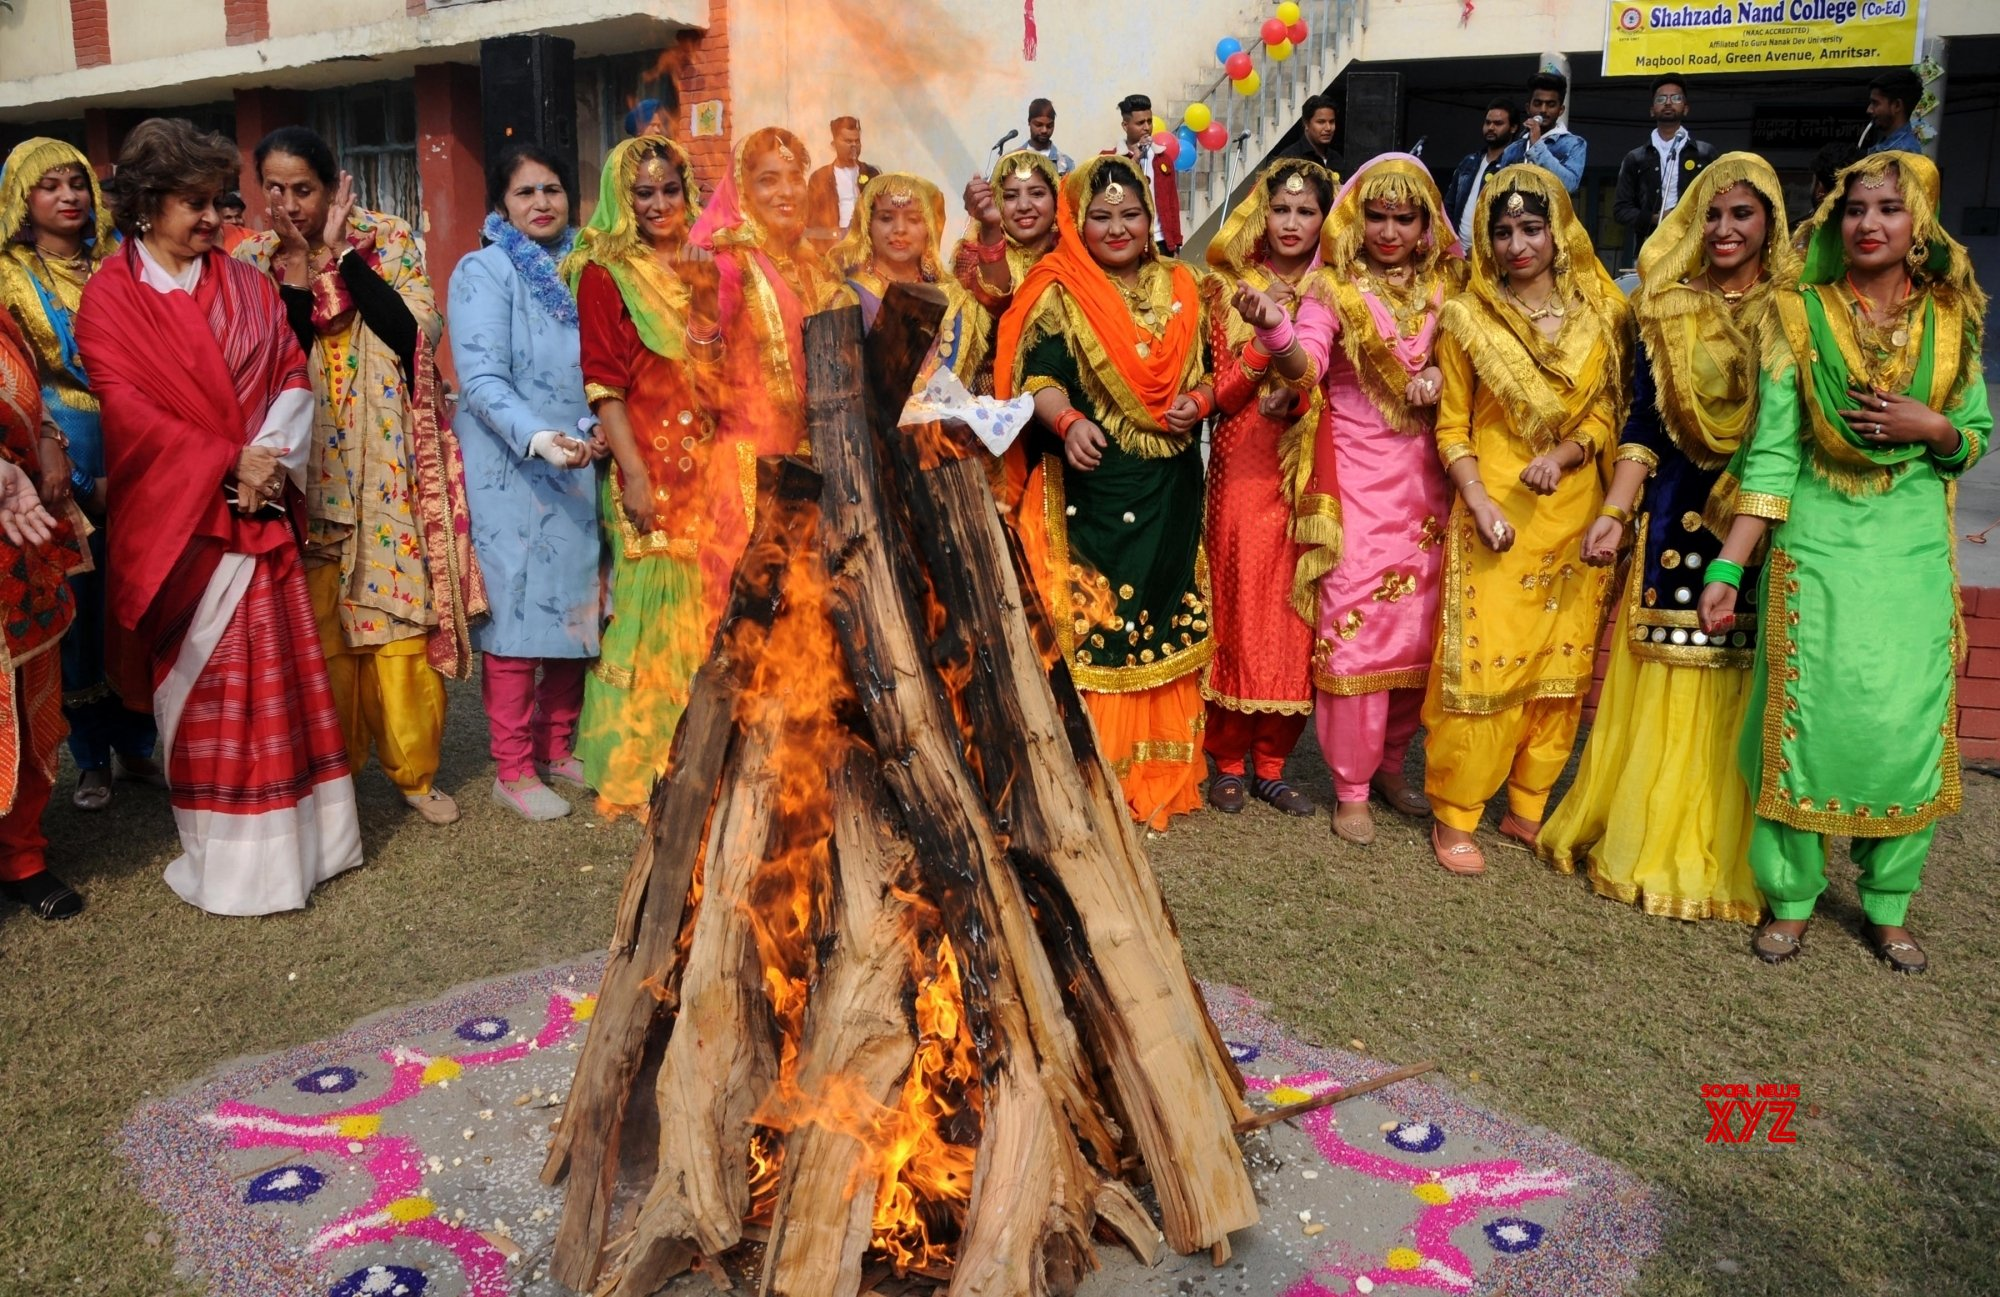 Happy Lohri, Lohri 2020, Happy Lohri 2020, लोहड़ी, लोहड़ी 2020, दुल्ला भट्टी, Dulla bhatti, Dulla Bhatti Song, हैप्पी लोहड़ी 2020, Lohri festival, Religious Stories Related Lohri, Lohri Song, Mantra Bhajan Aarti